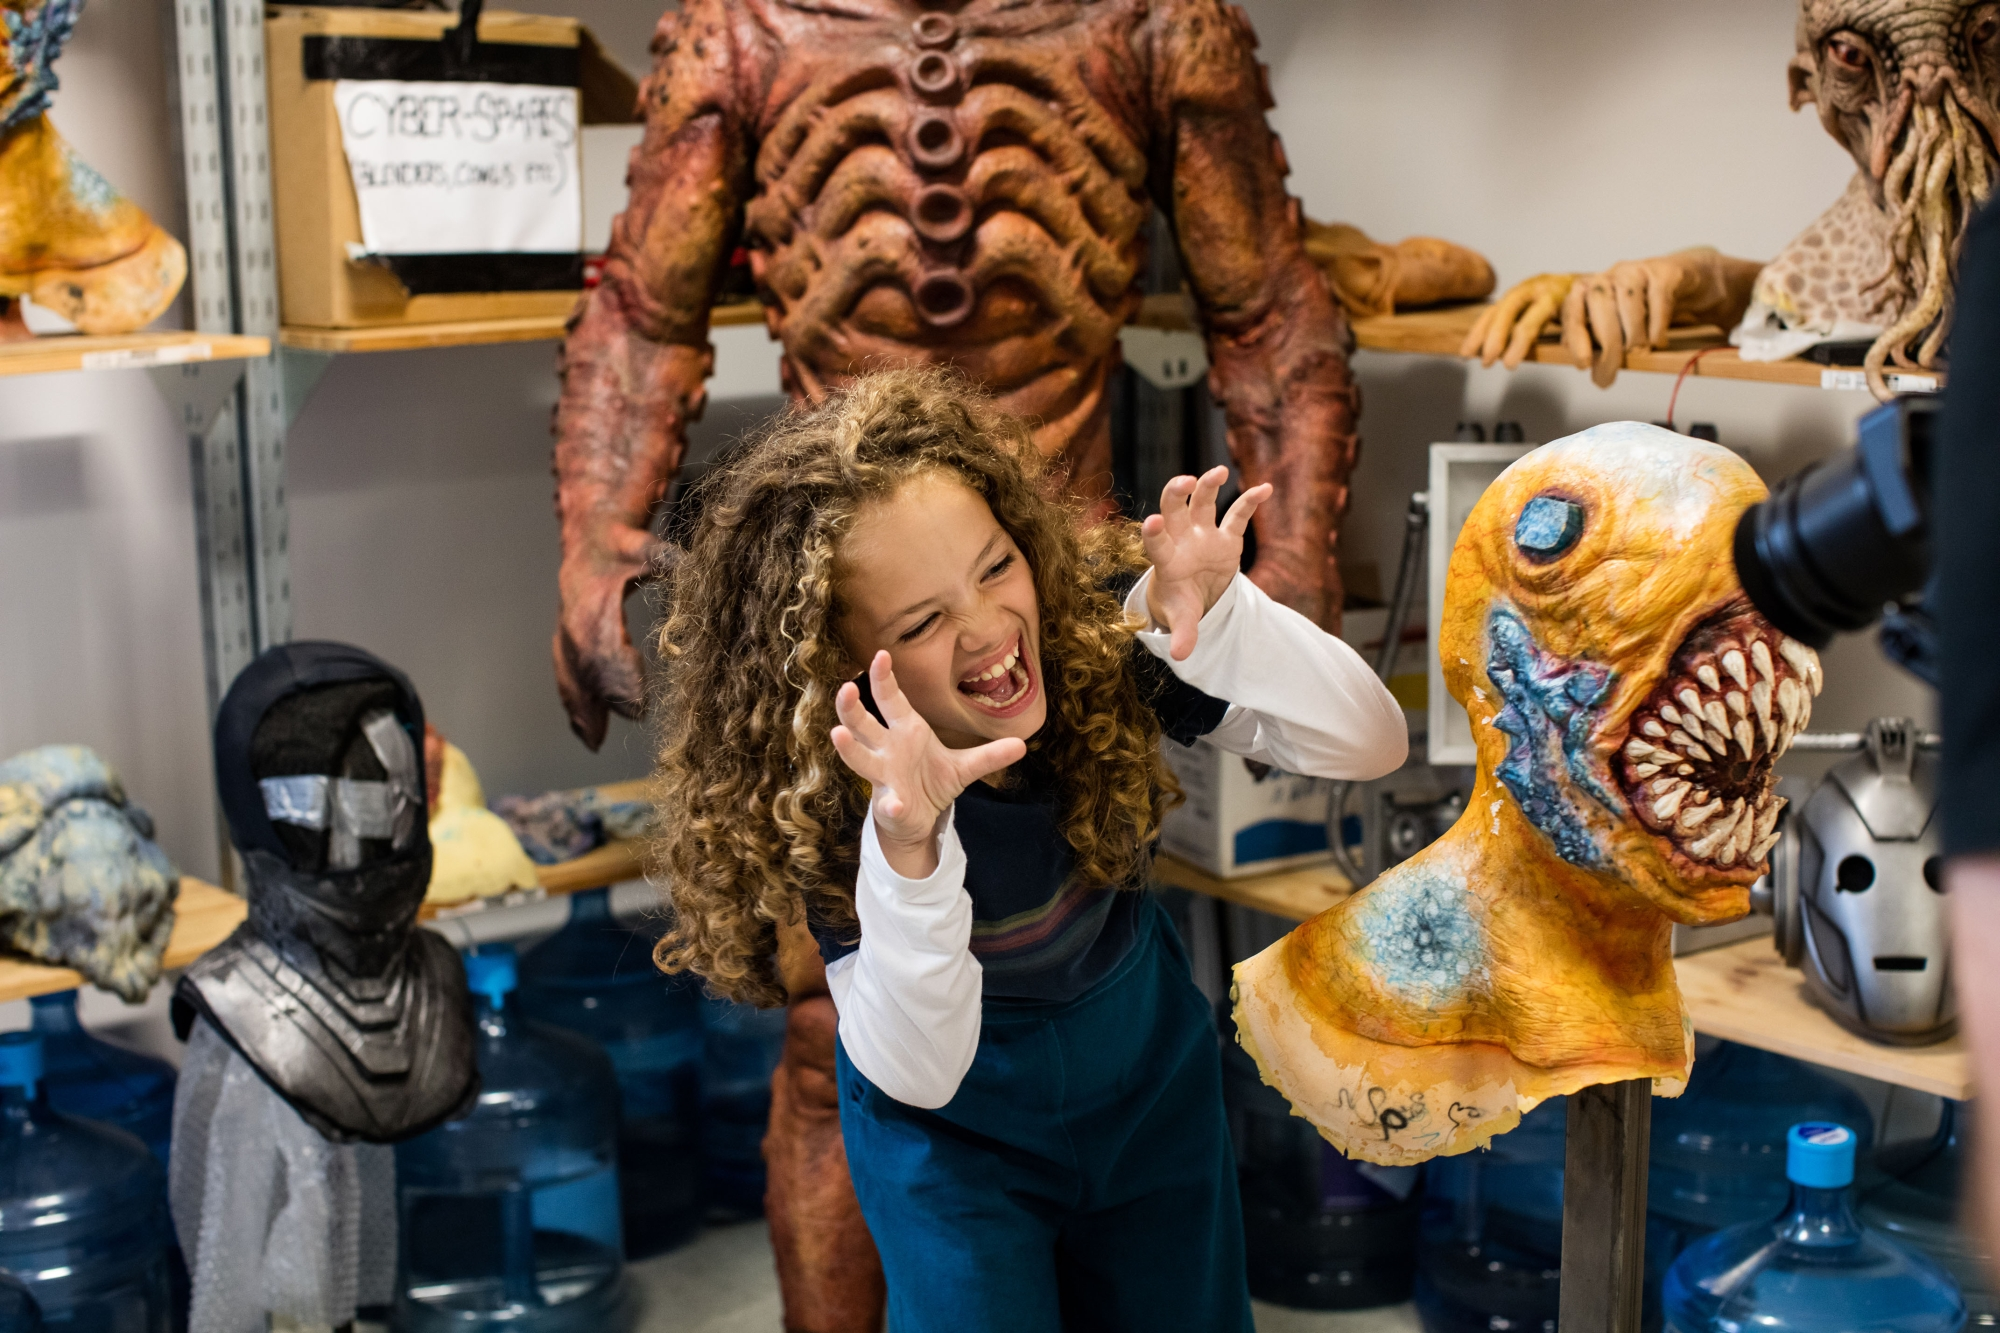 Children in Need 2018: Anna meets the monsters! (Credit: BBC/Sophie Mutevelian)